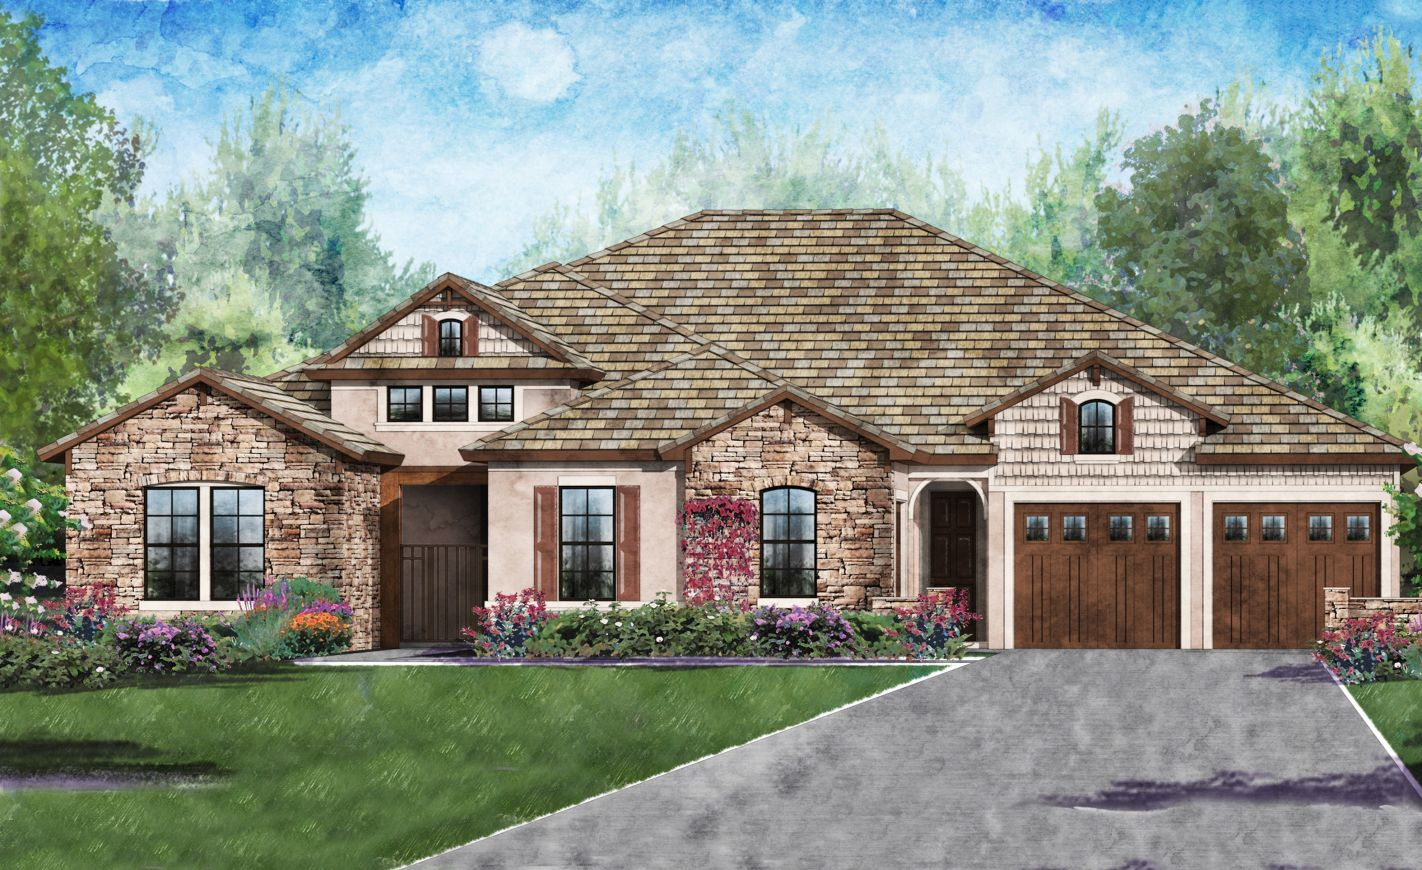 Nocatee Homes for Sale - The Allegheny at Nocatee